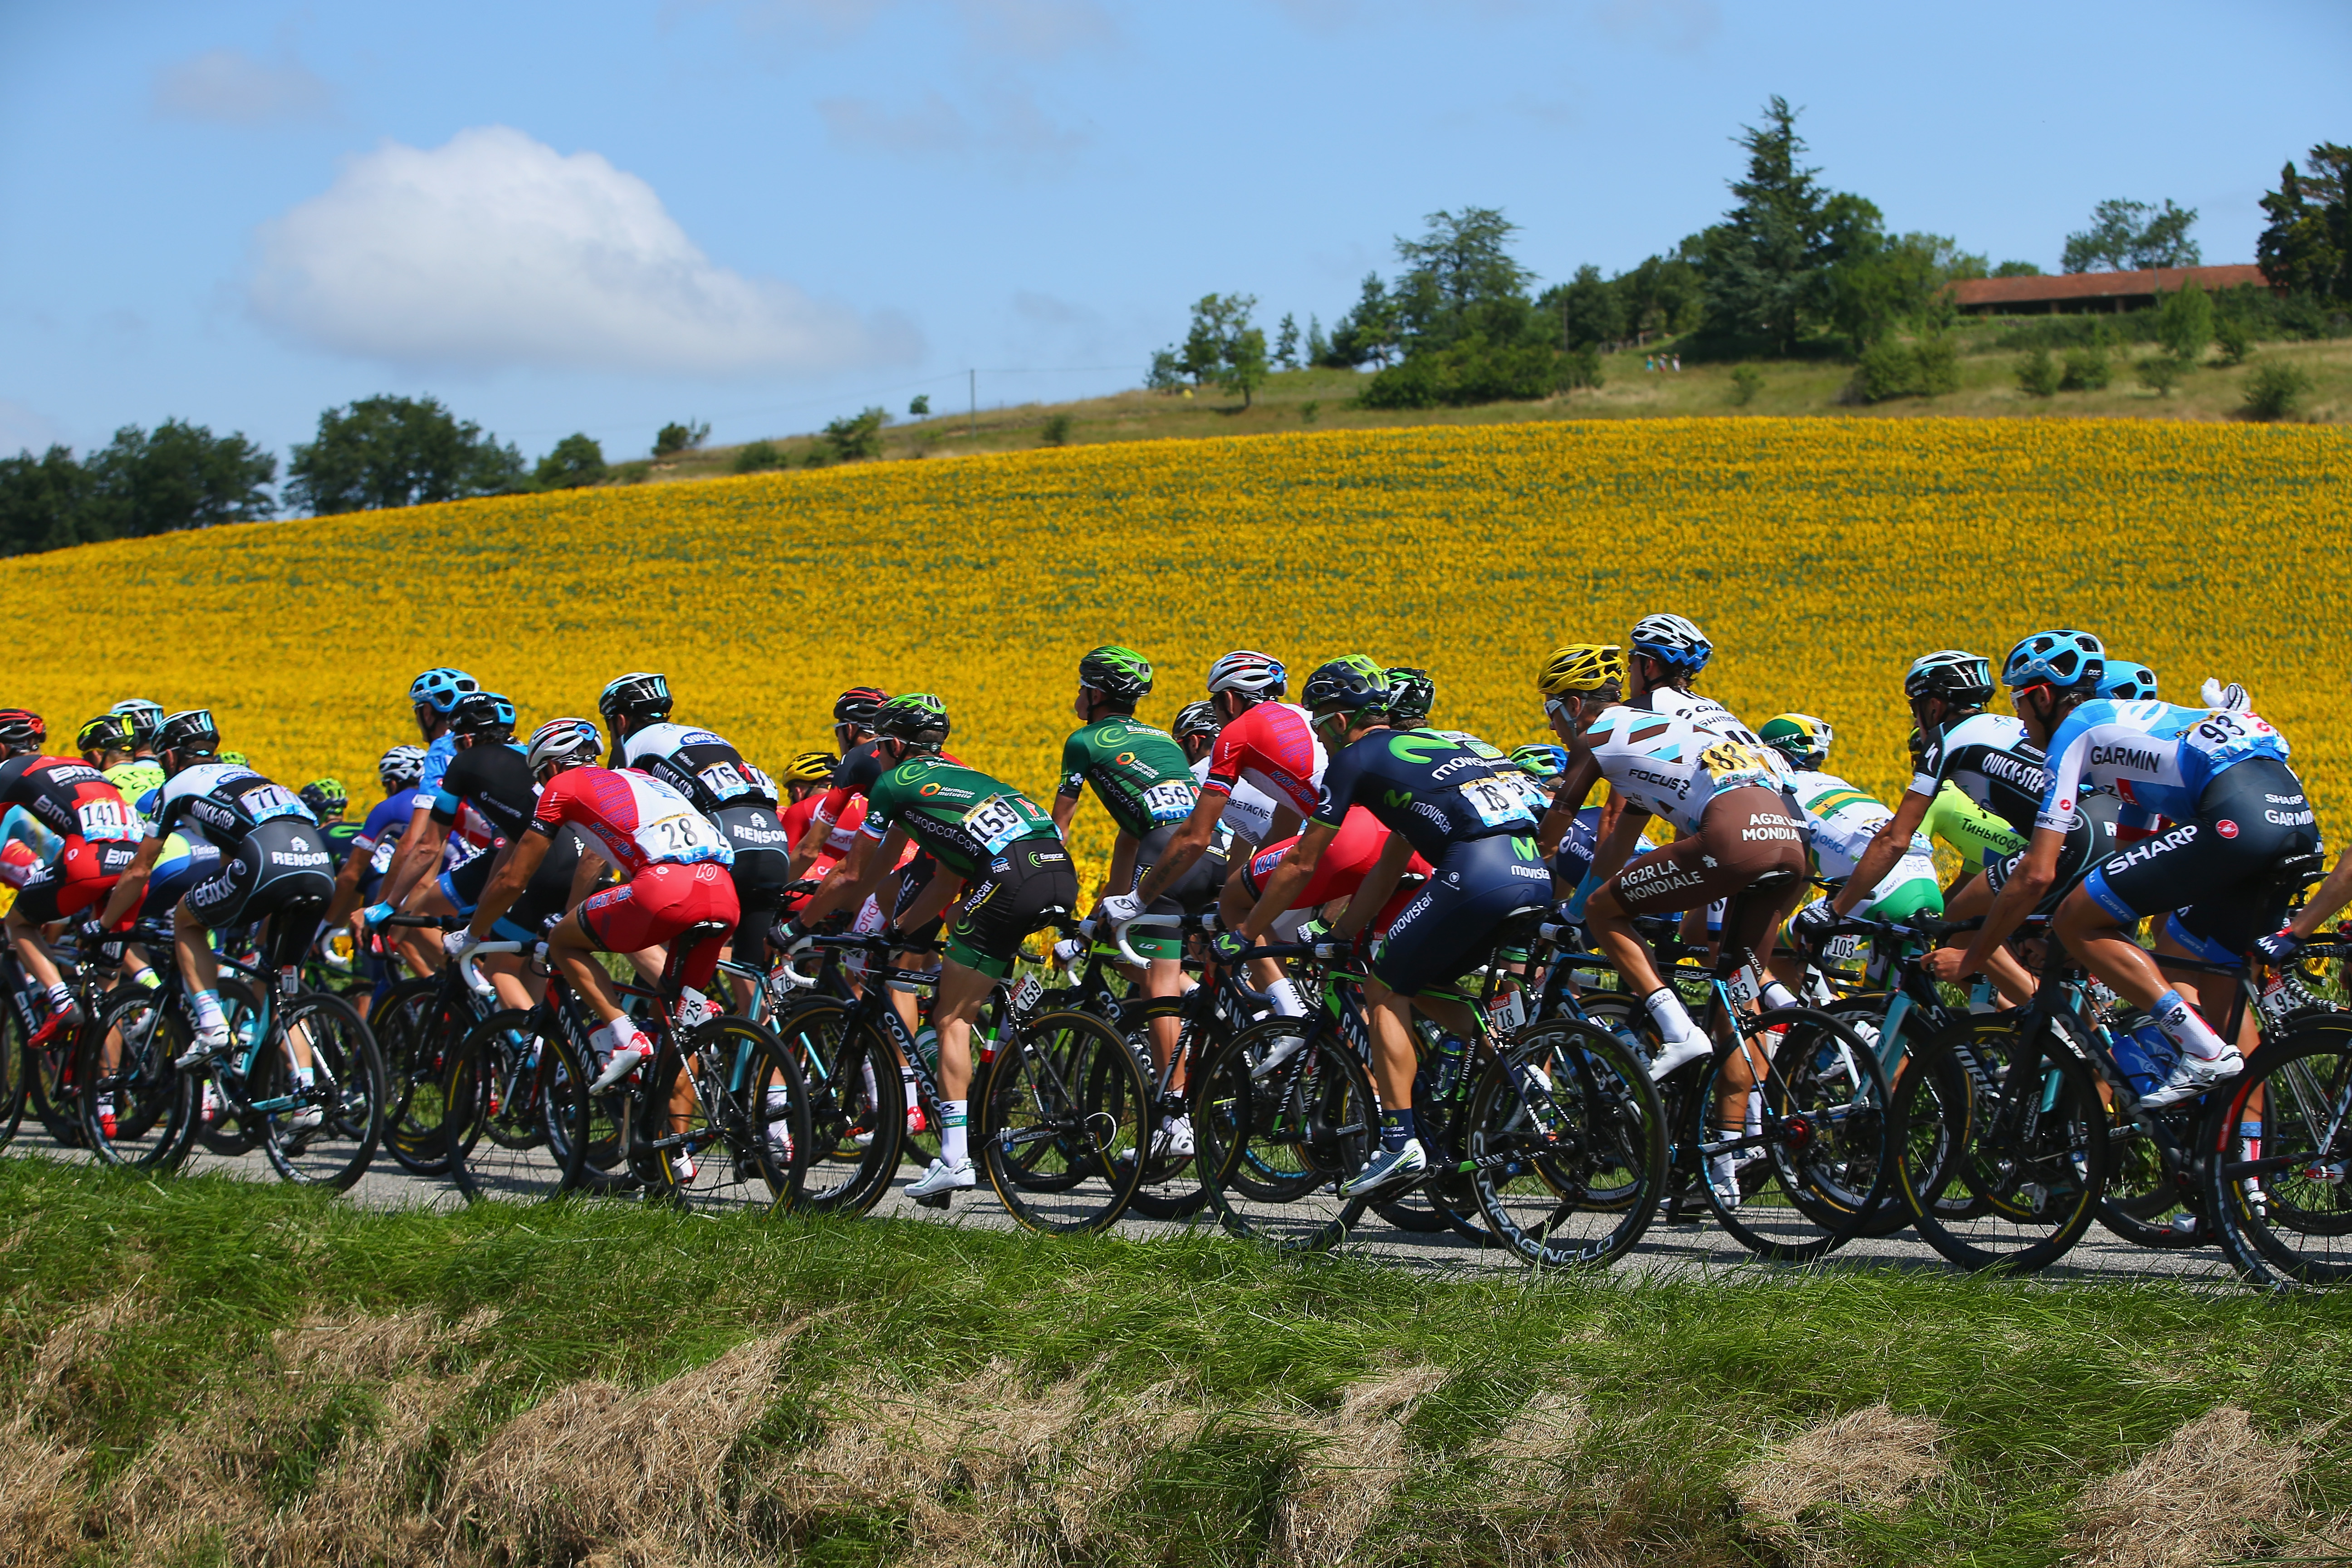 The peloton passes by sunflower fields during the sixteenth stage of the Tour de France, a 238km stage between Carcassonne and Bagneres-de-Luchon.